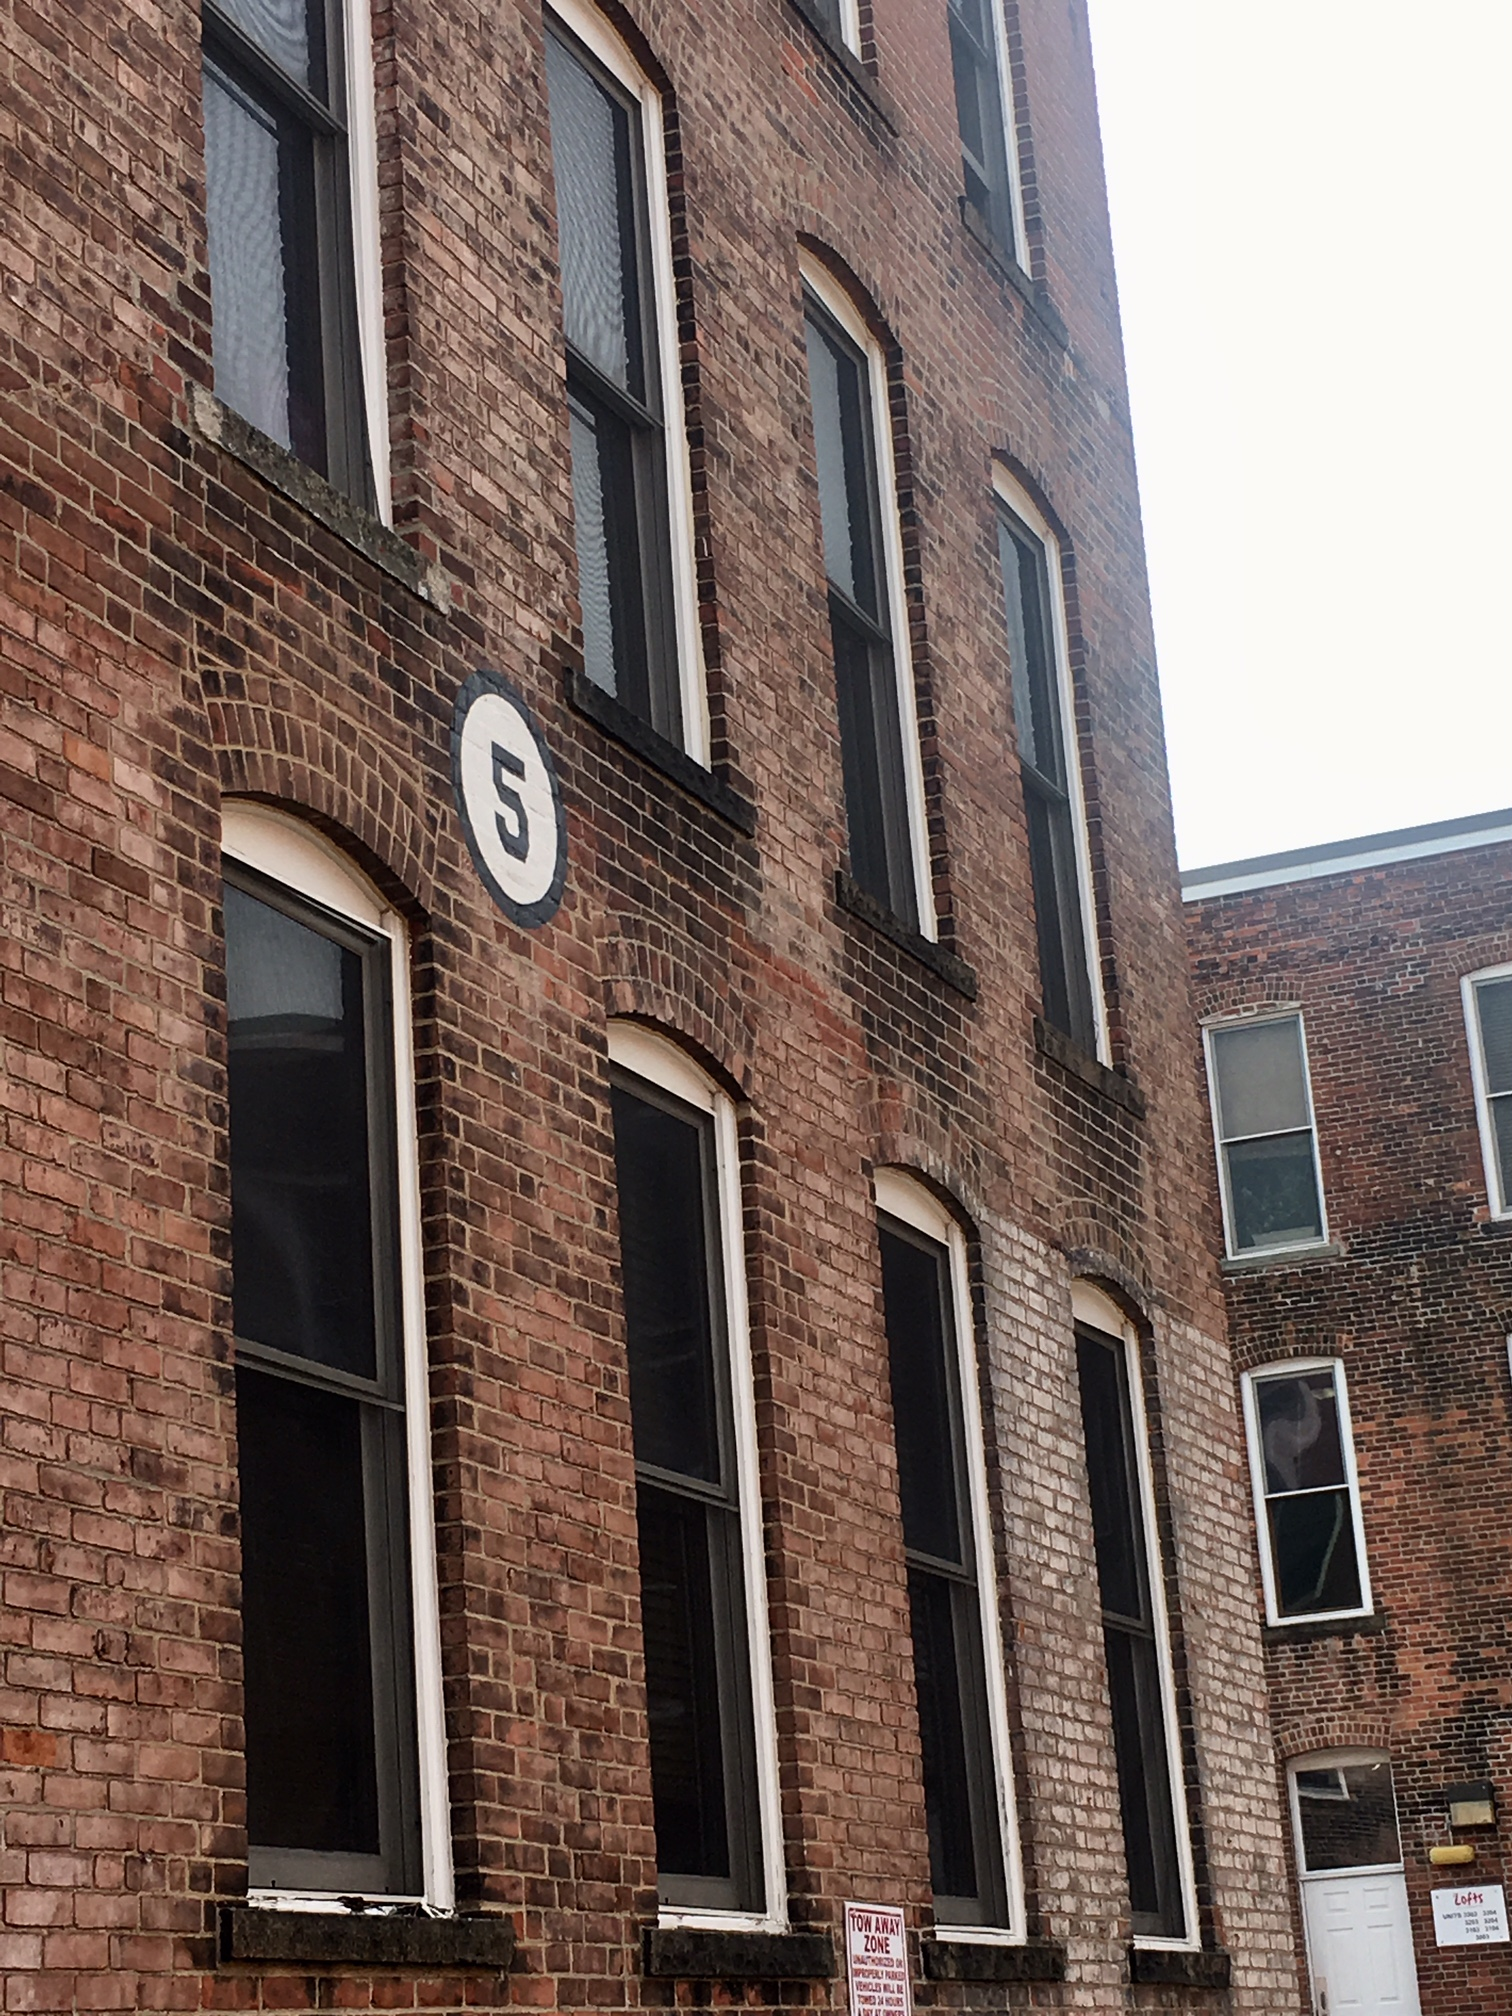 We live in a renovated corset factory. Yes, you read that right. And I love telling people that! The building numbers are my favorite.